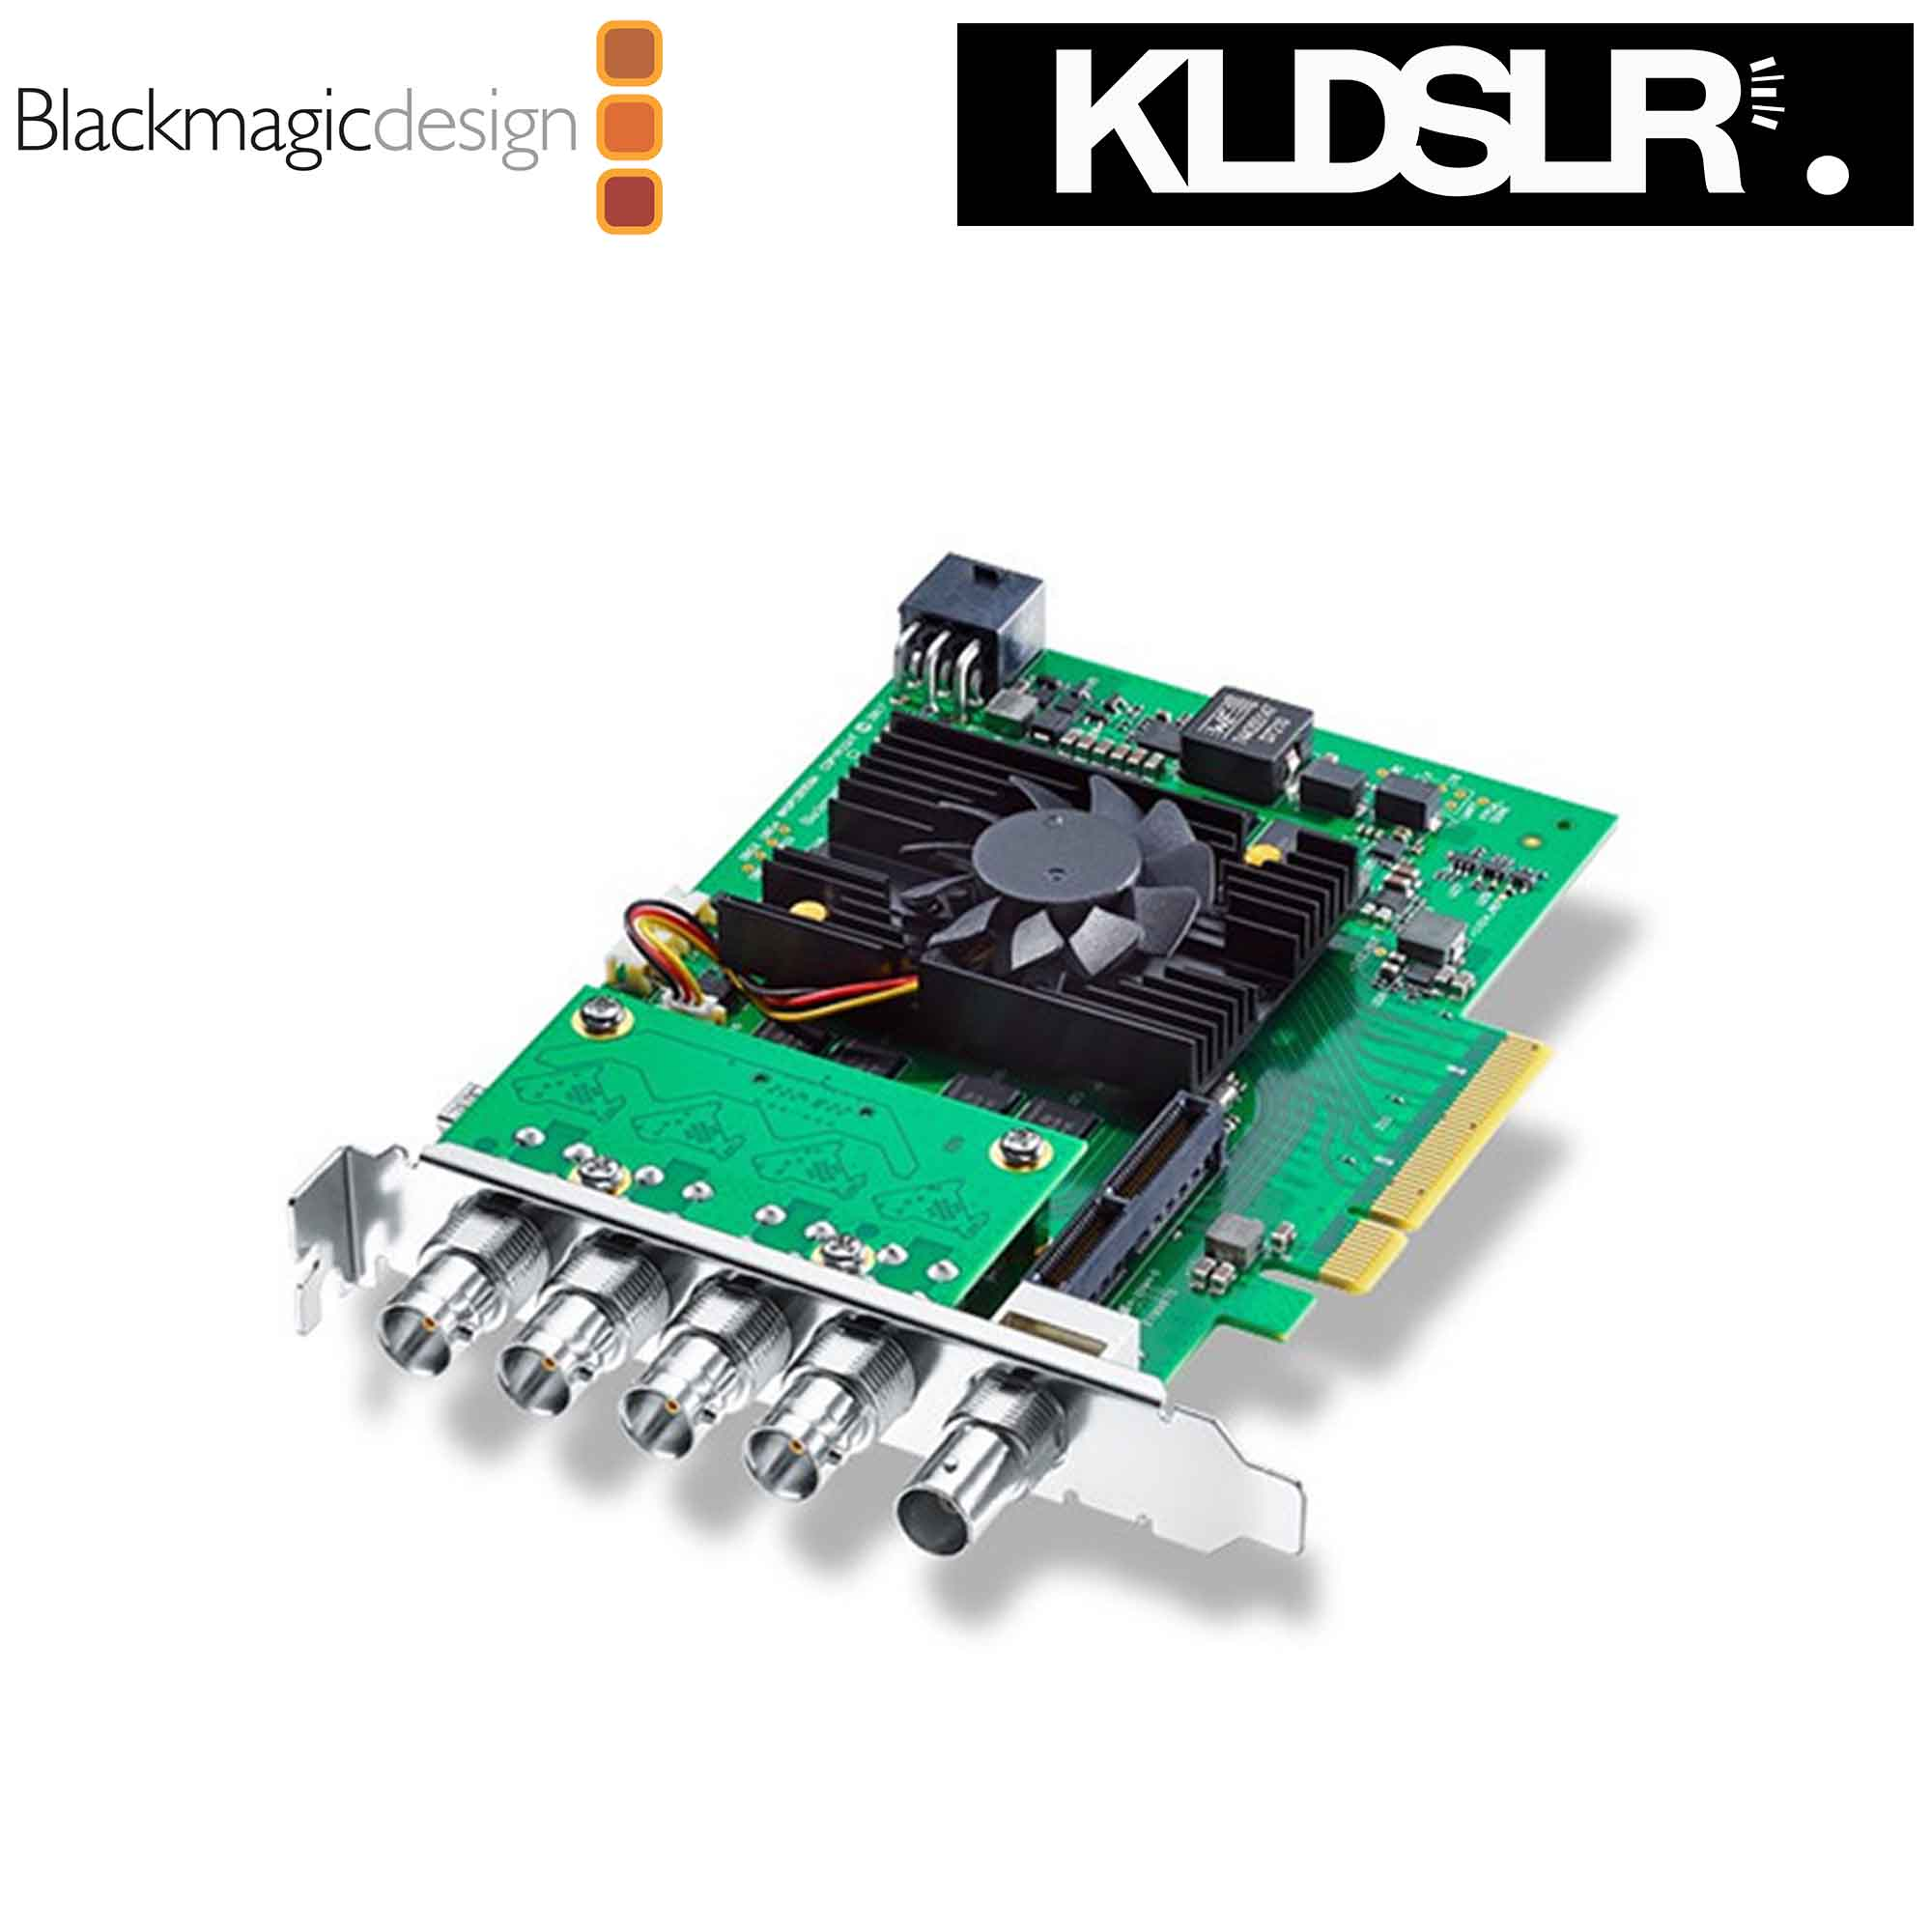 Blackmagic Design Decklink 8K Pro Cinema Capture Card (Blackmagic Malaysia)